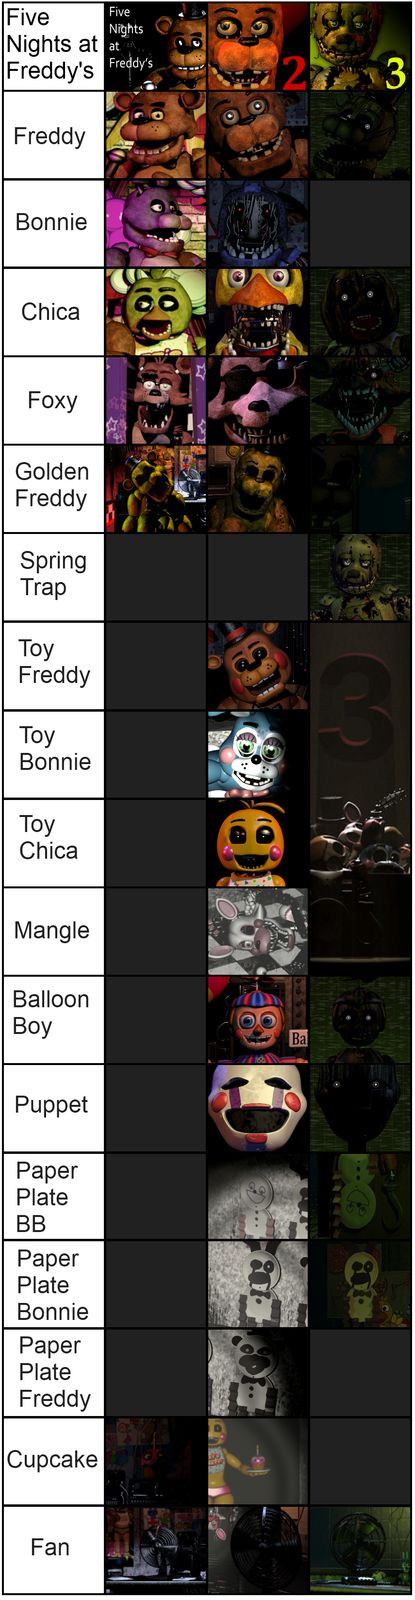 Five Nights at Freddy's: Image Gallery | Know Your Meme ^^^ THAT. DARN. FAN!!!